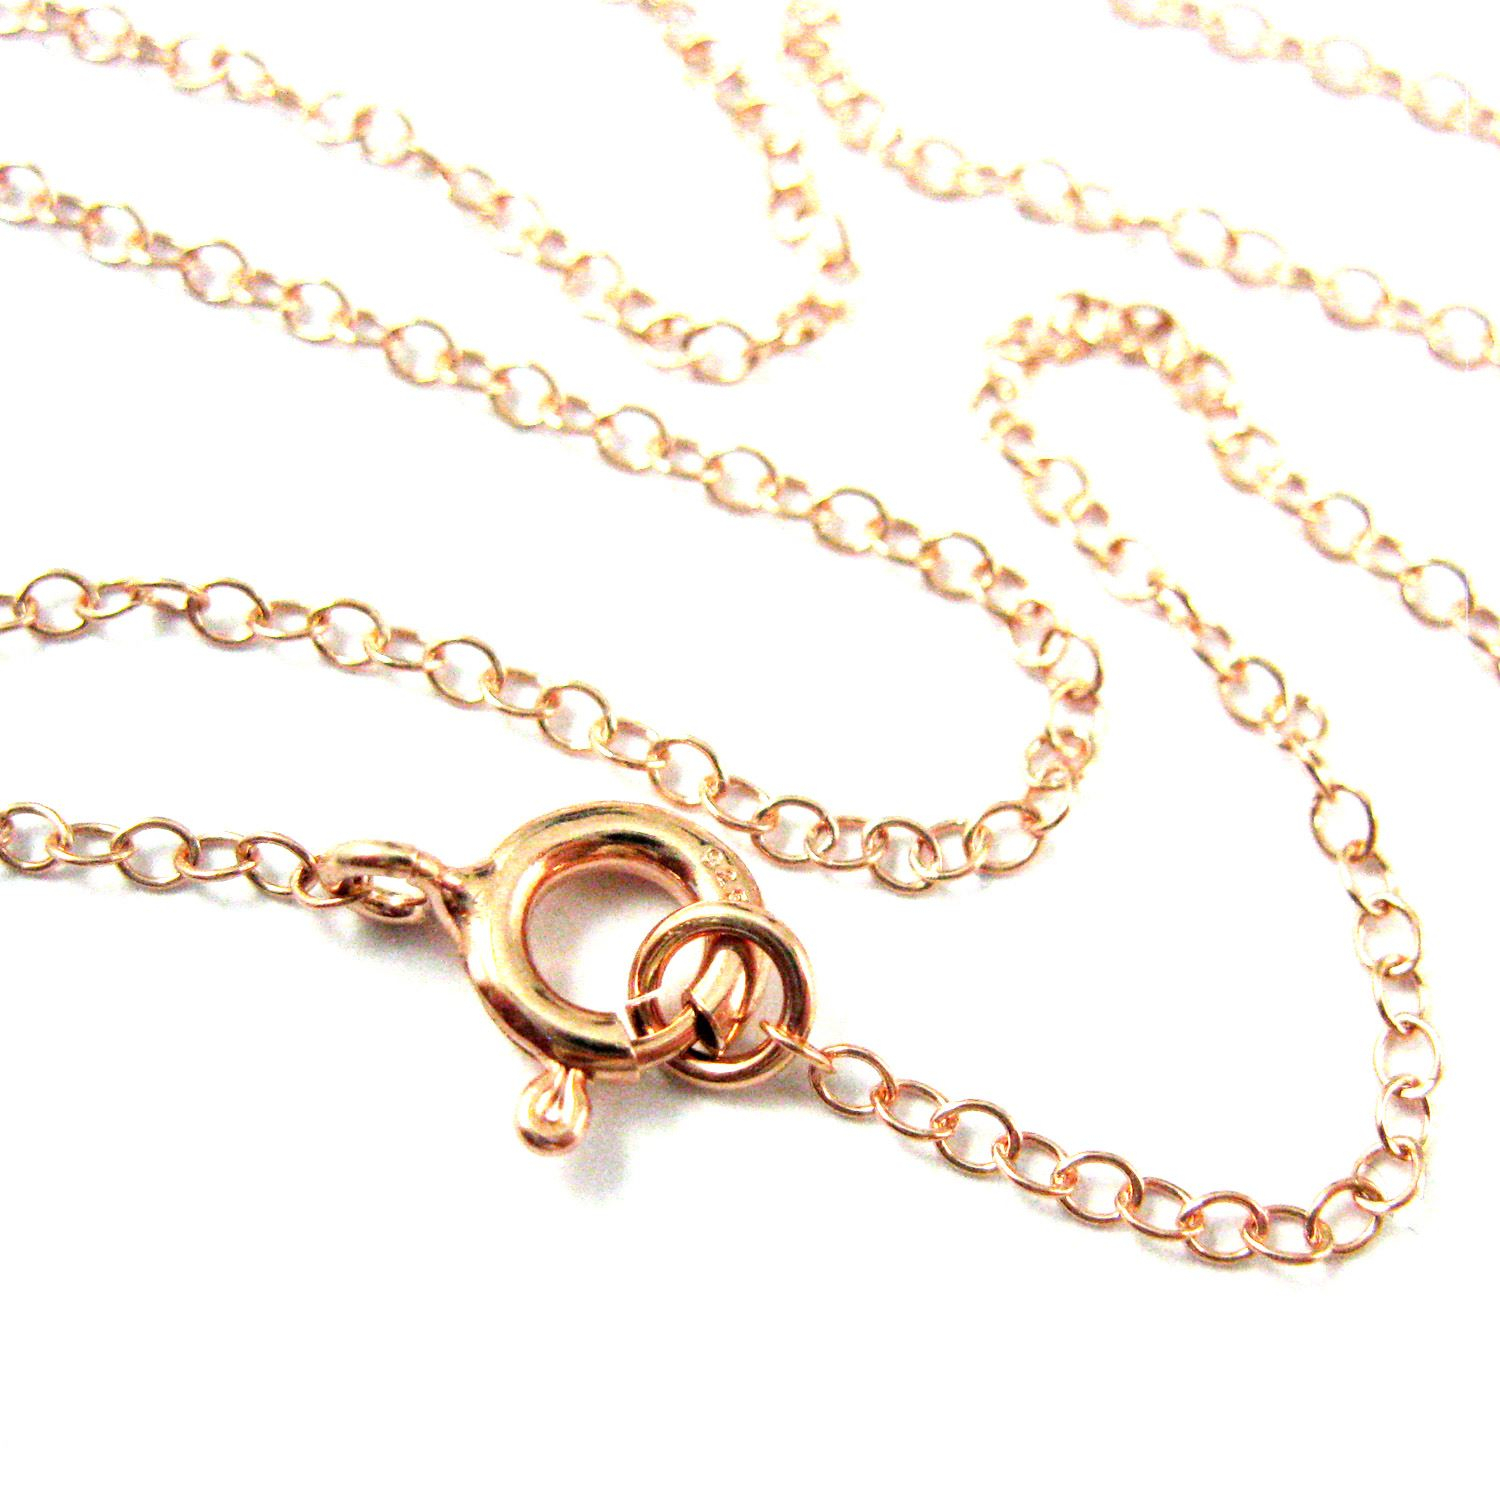 Rose Gold Necklace – Rose Gold Plated Over Sterling Silver Chain – 2mm Cable Chain Necklace – Finished For Pendant All Sizes Intended For Most Up To Date Cable Chain Necklaces (View 7 of 25)